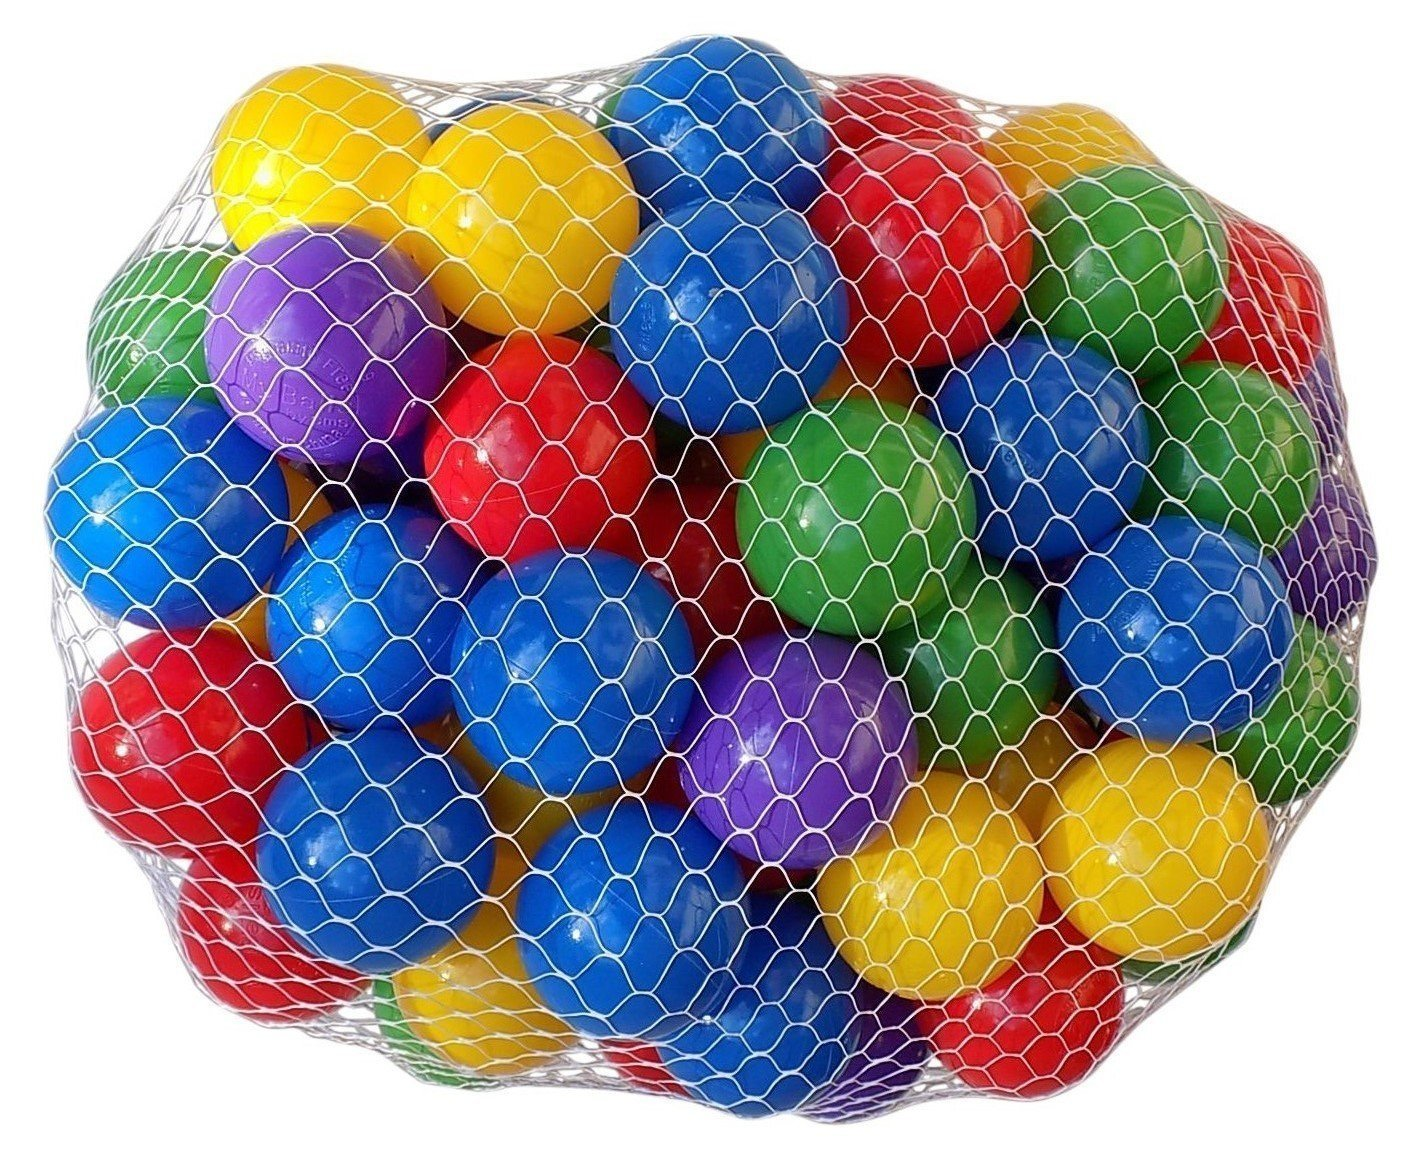 My Balls by CMS Pack of 100 pcs Phthalate Free, BPA Free 2.5'' Plastic Ball Pit Balls in 5 Bright Colors